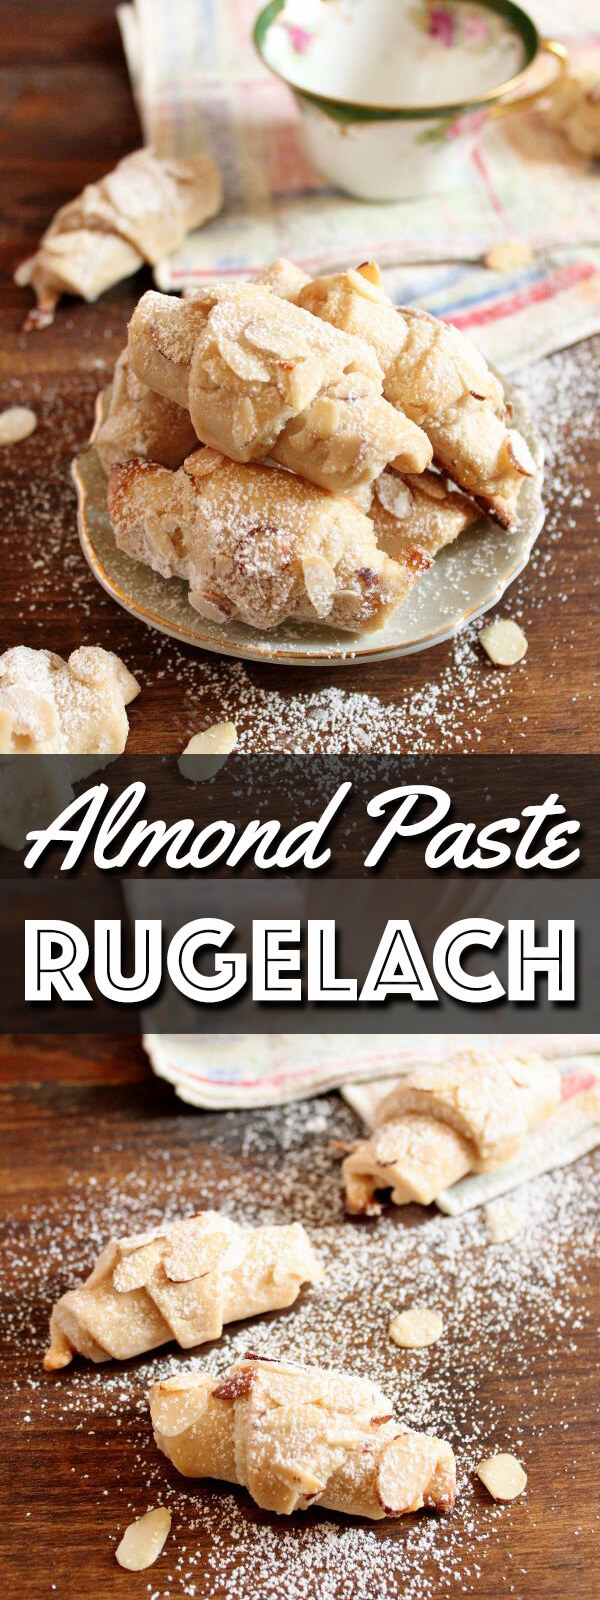 Almond Paste Rugelach long pin collage